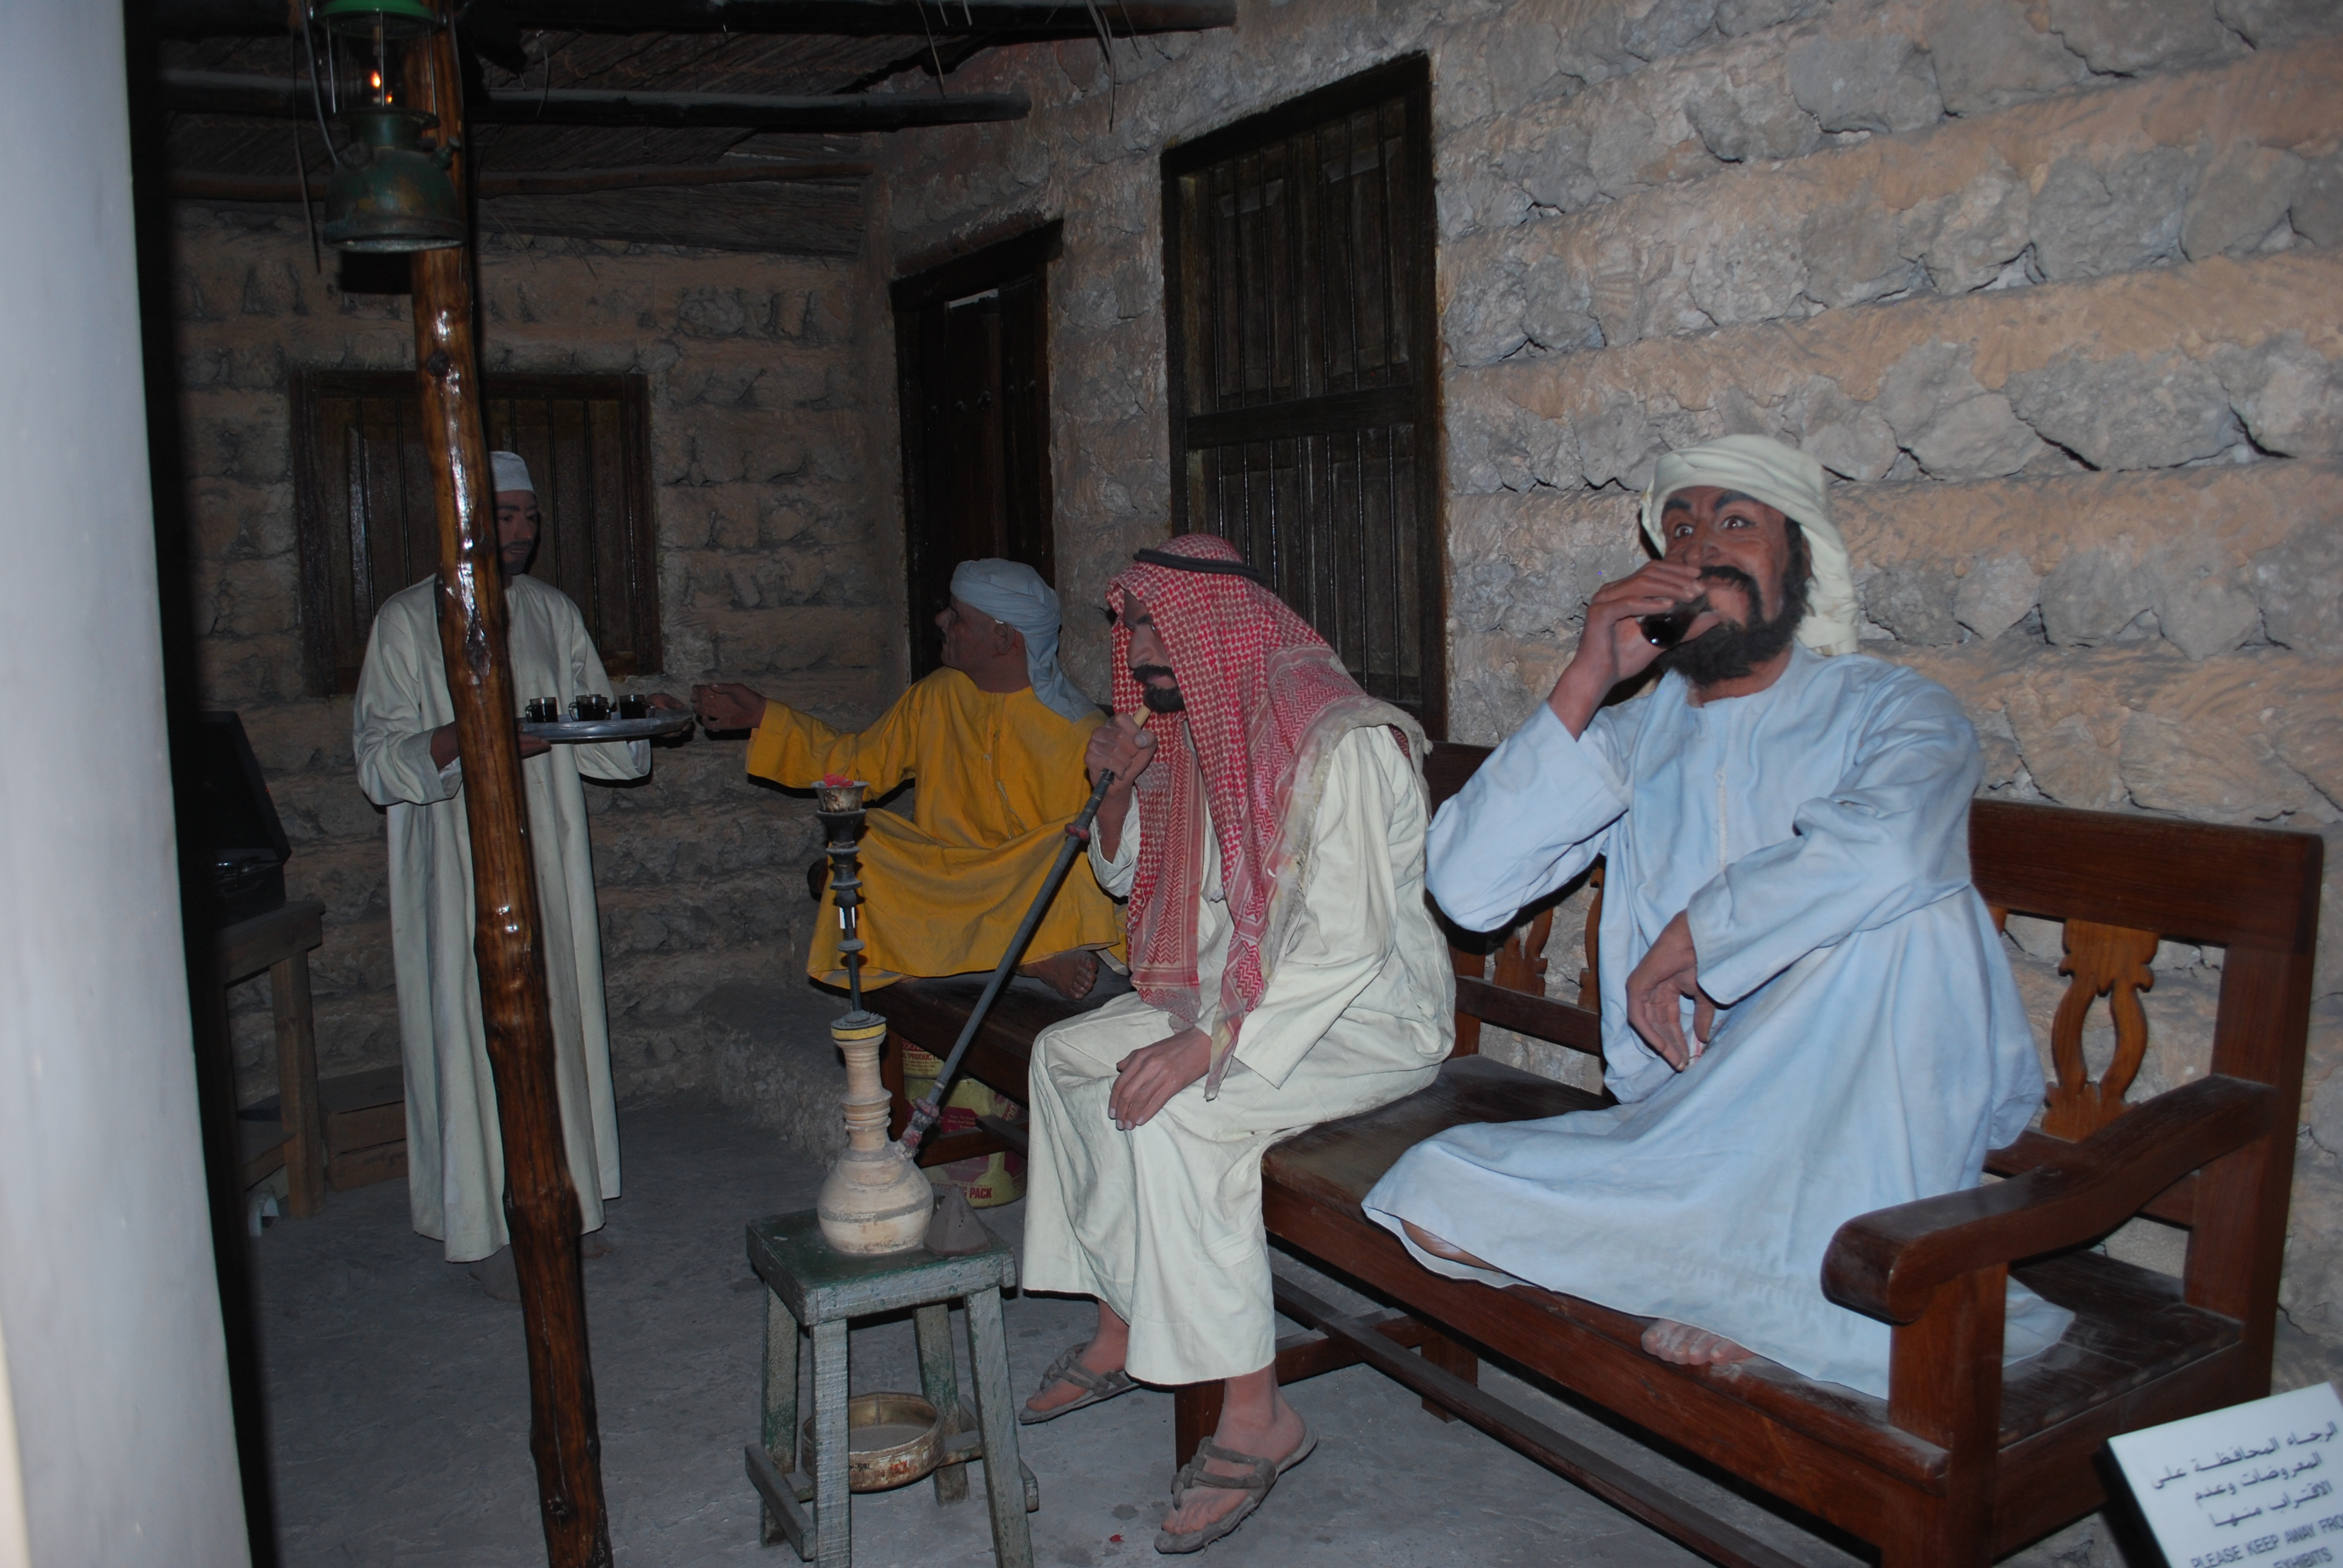 Bedouin man cave at the Dubai Museum